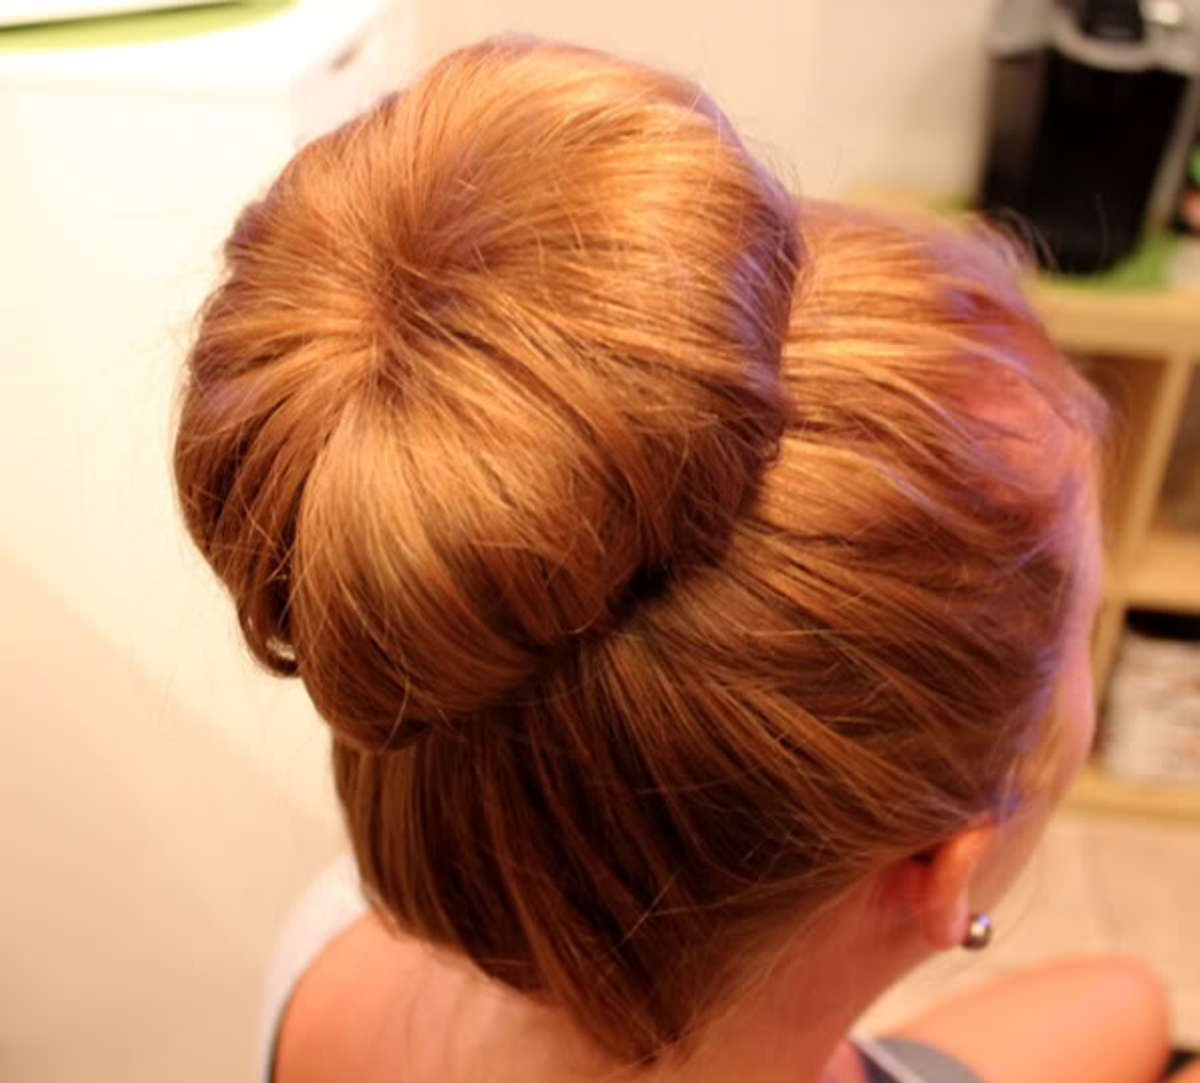 High sock bun